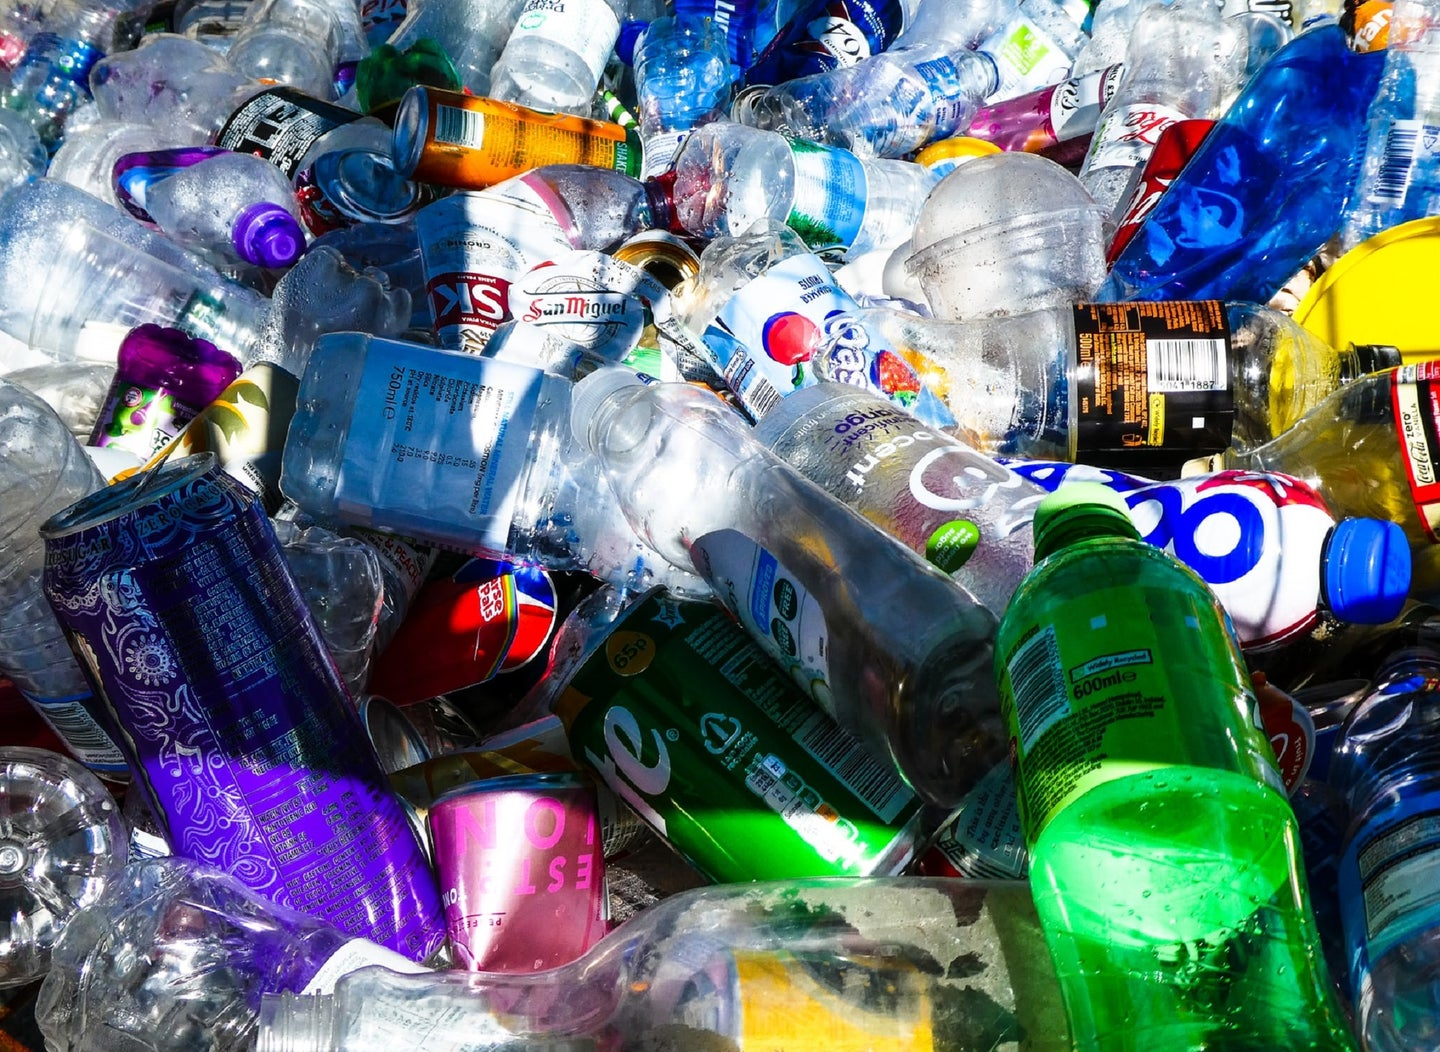 Plastic water bottles and aluminum soda cans in a bin